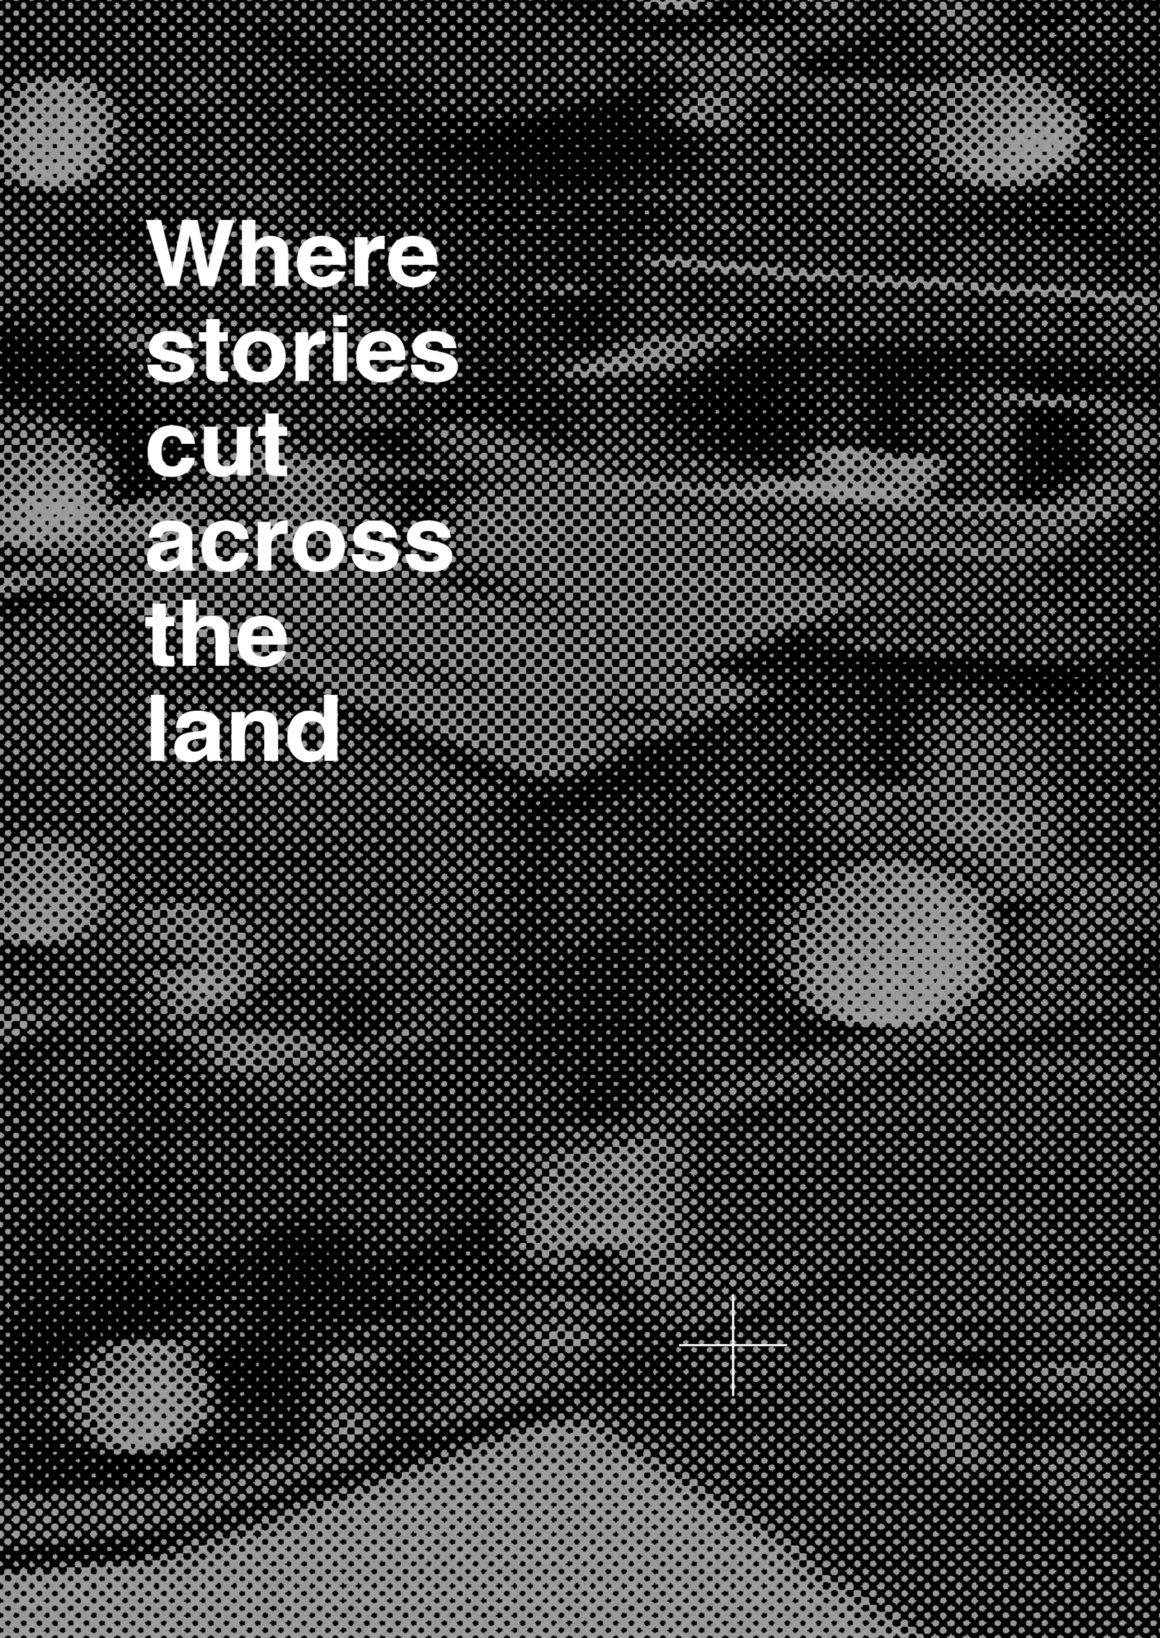 Where stories cut across the land